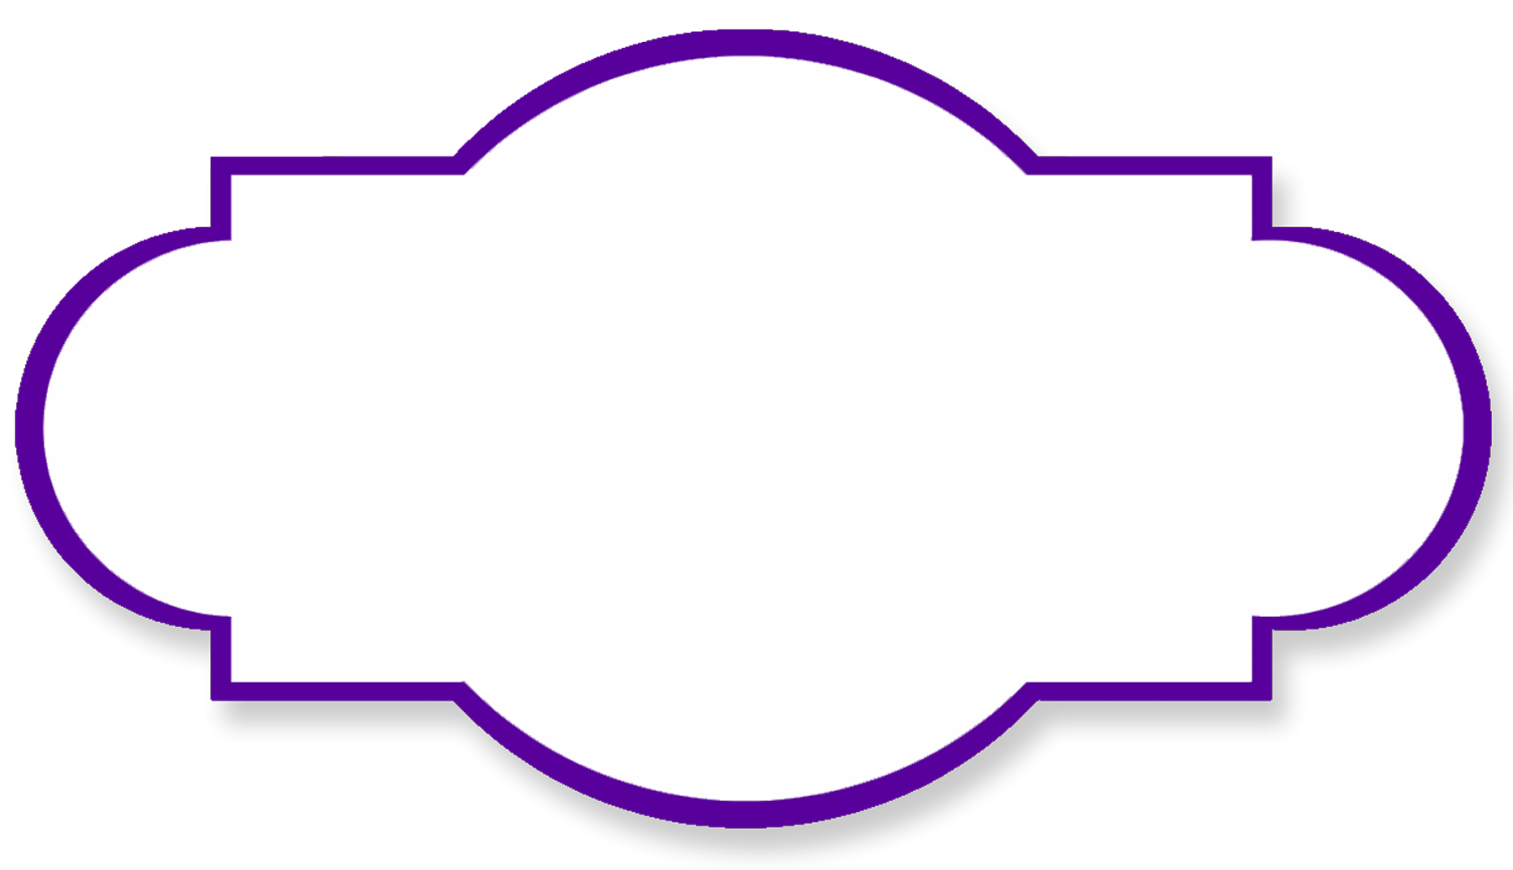 png transparent stock Label shapes clipart. Purple swirl border templates.